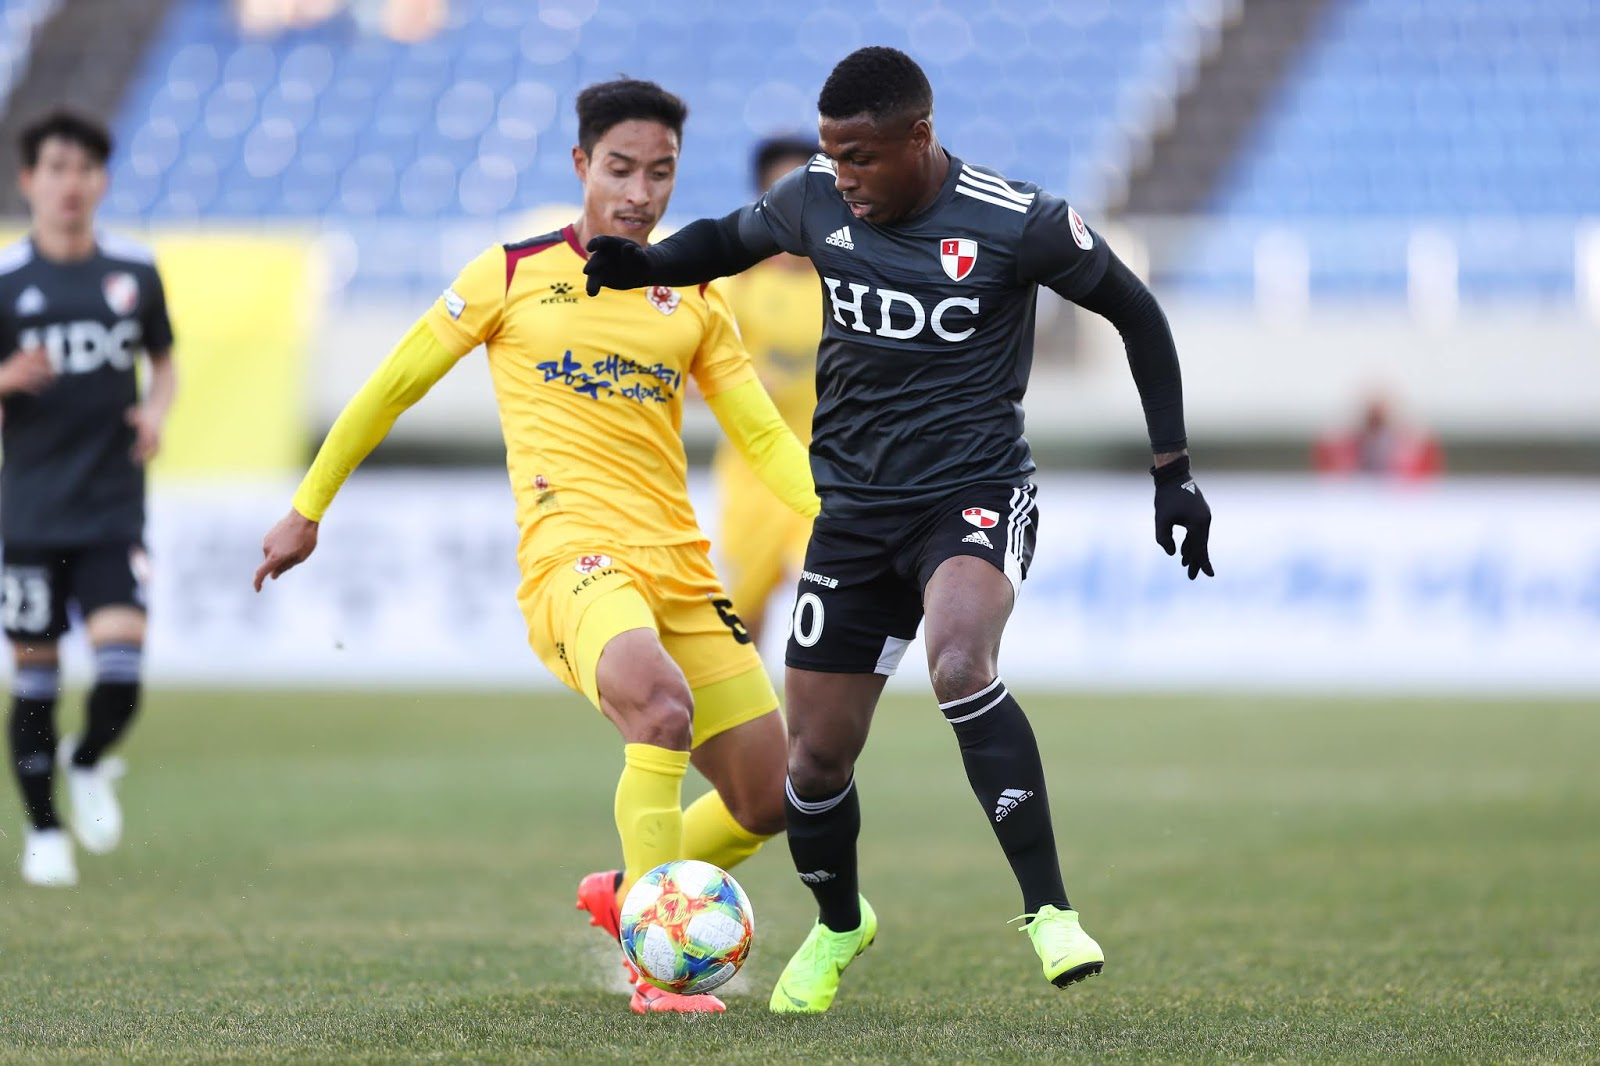 K League 2 Preview: Busan IPark vs Gwangju FC